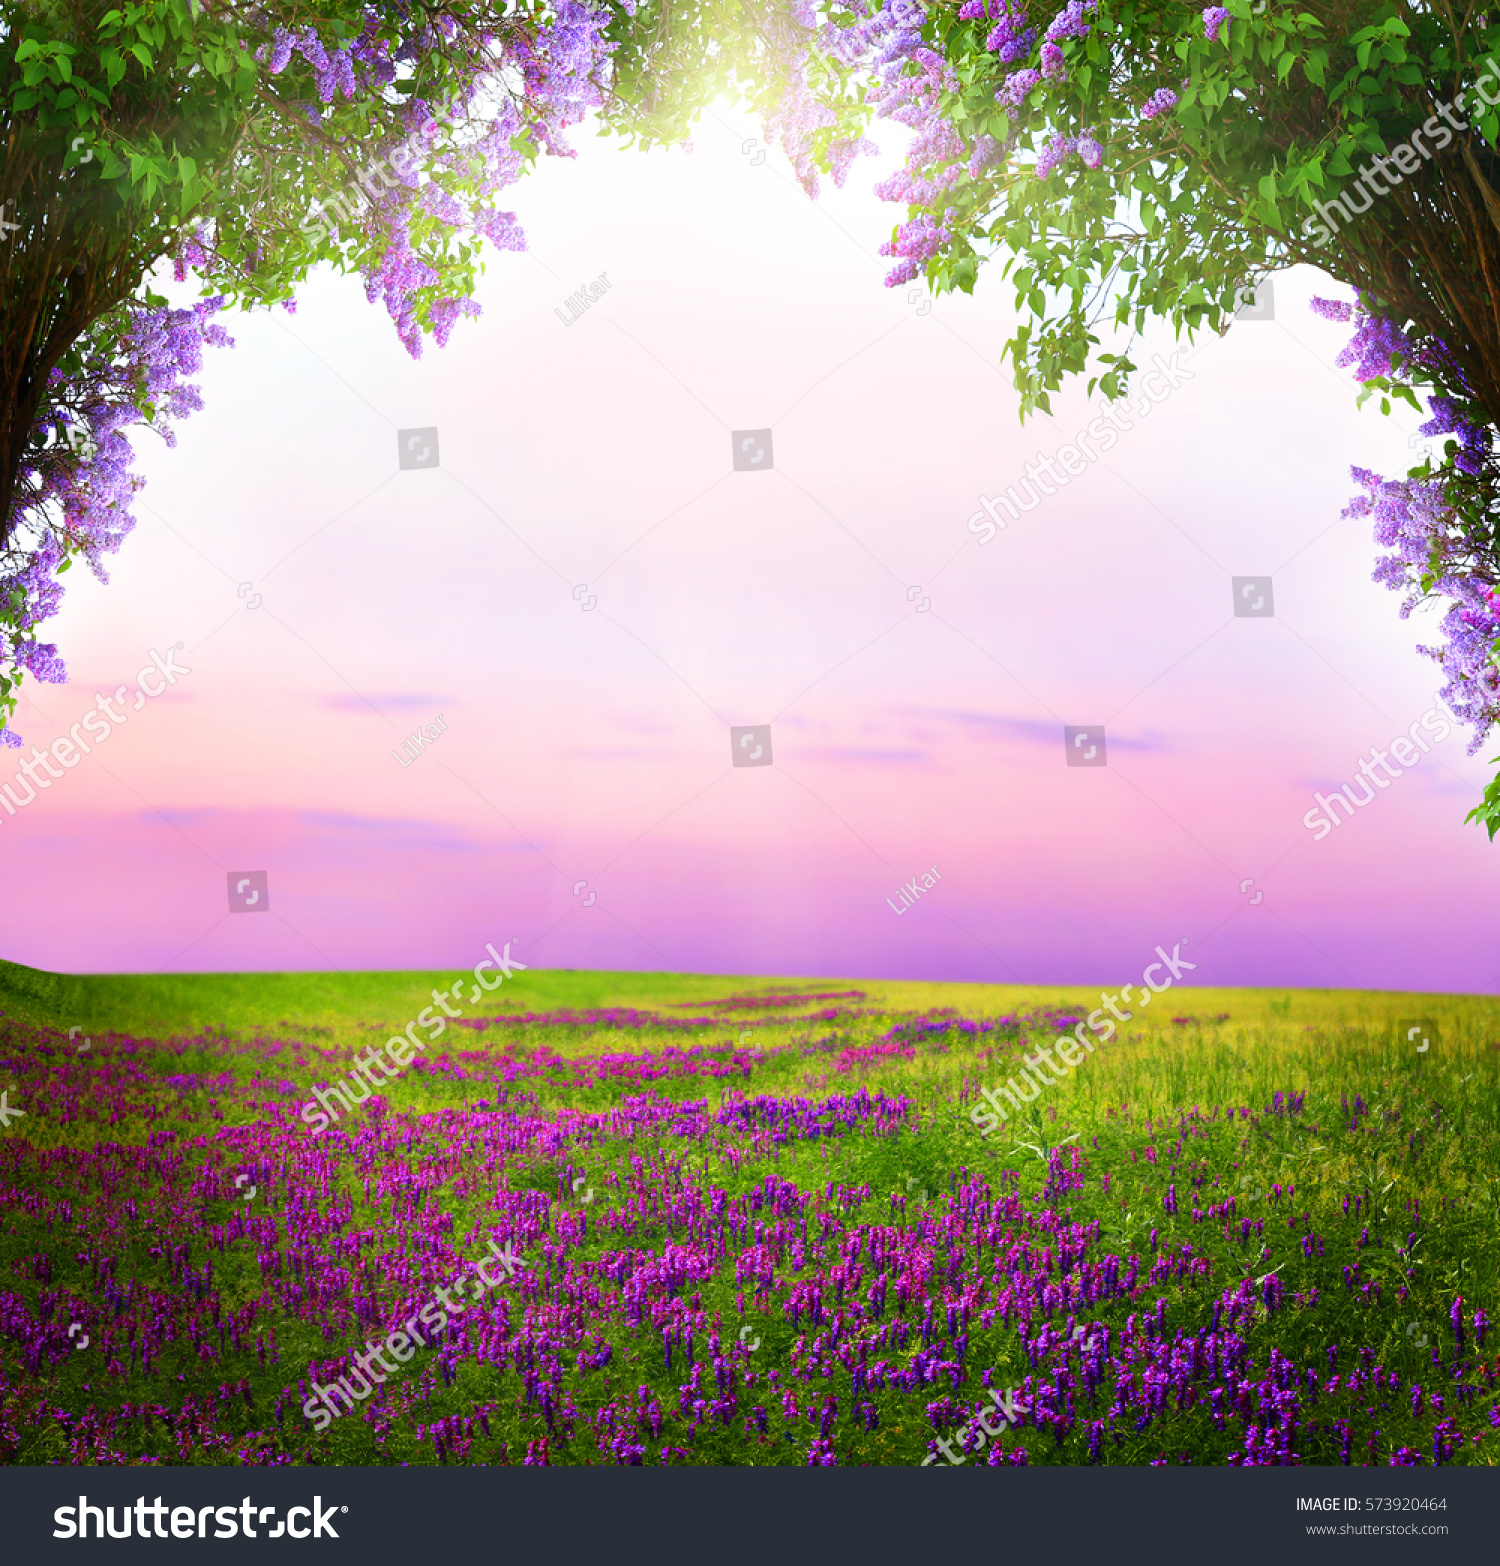 fantasy background magic forest beautiful spring landscape lilac